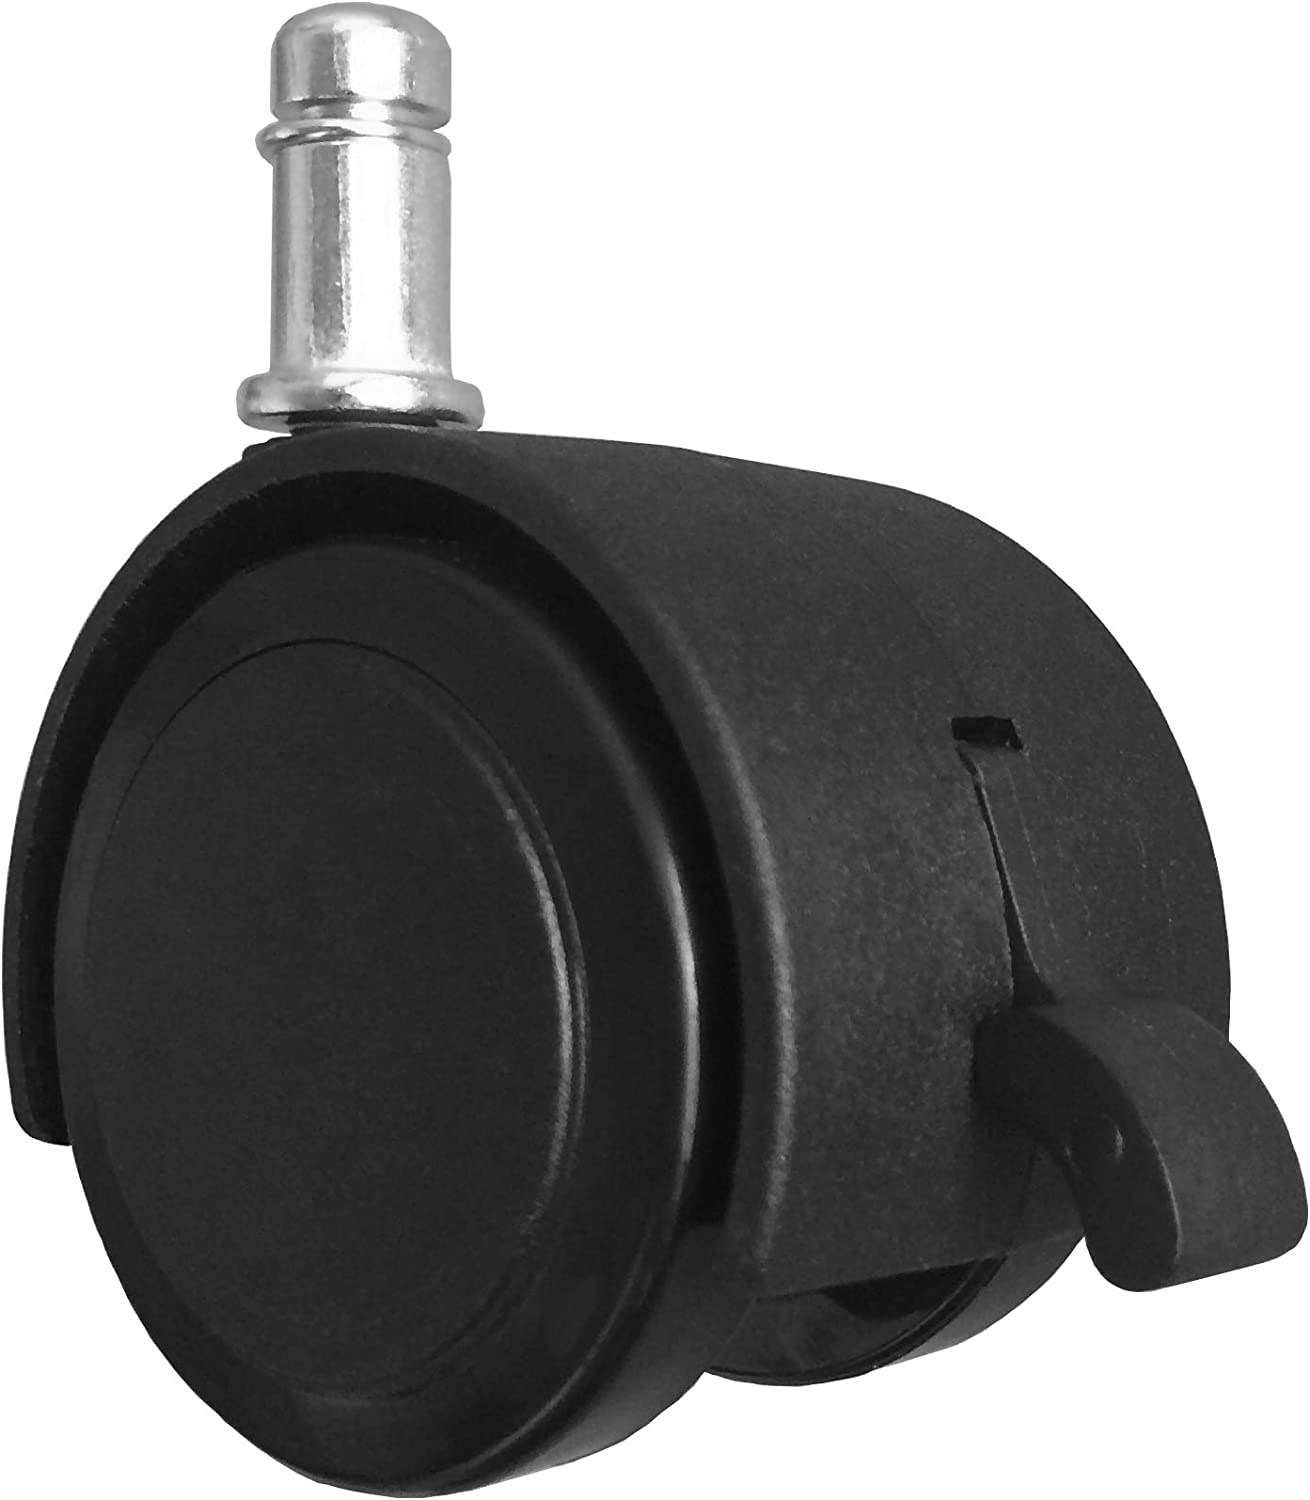 """2"""" Replacement Hard Floor Office Chair or Stool Caster Wheels - with Brake (Set of 5) - S5420-5"""